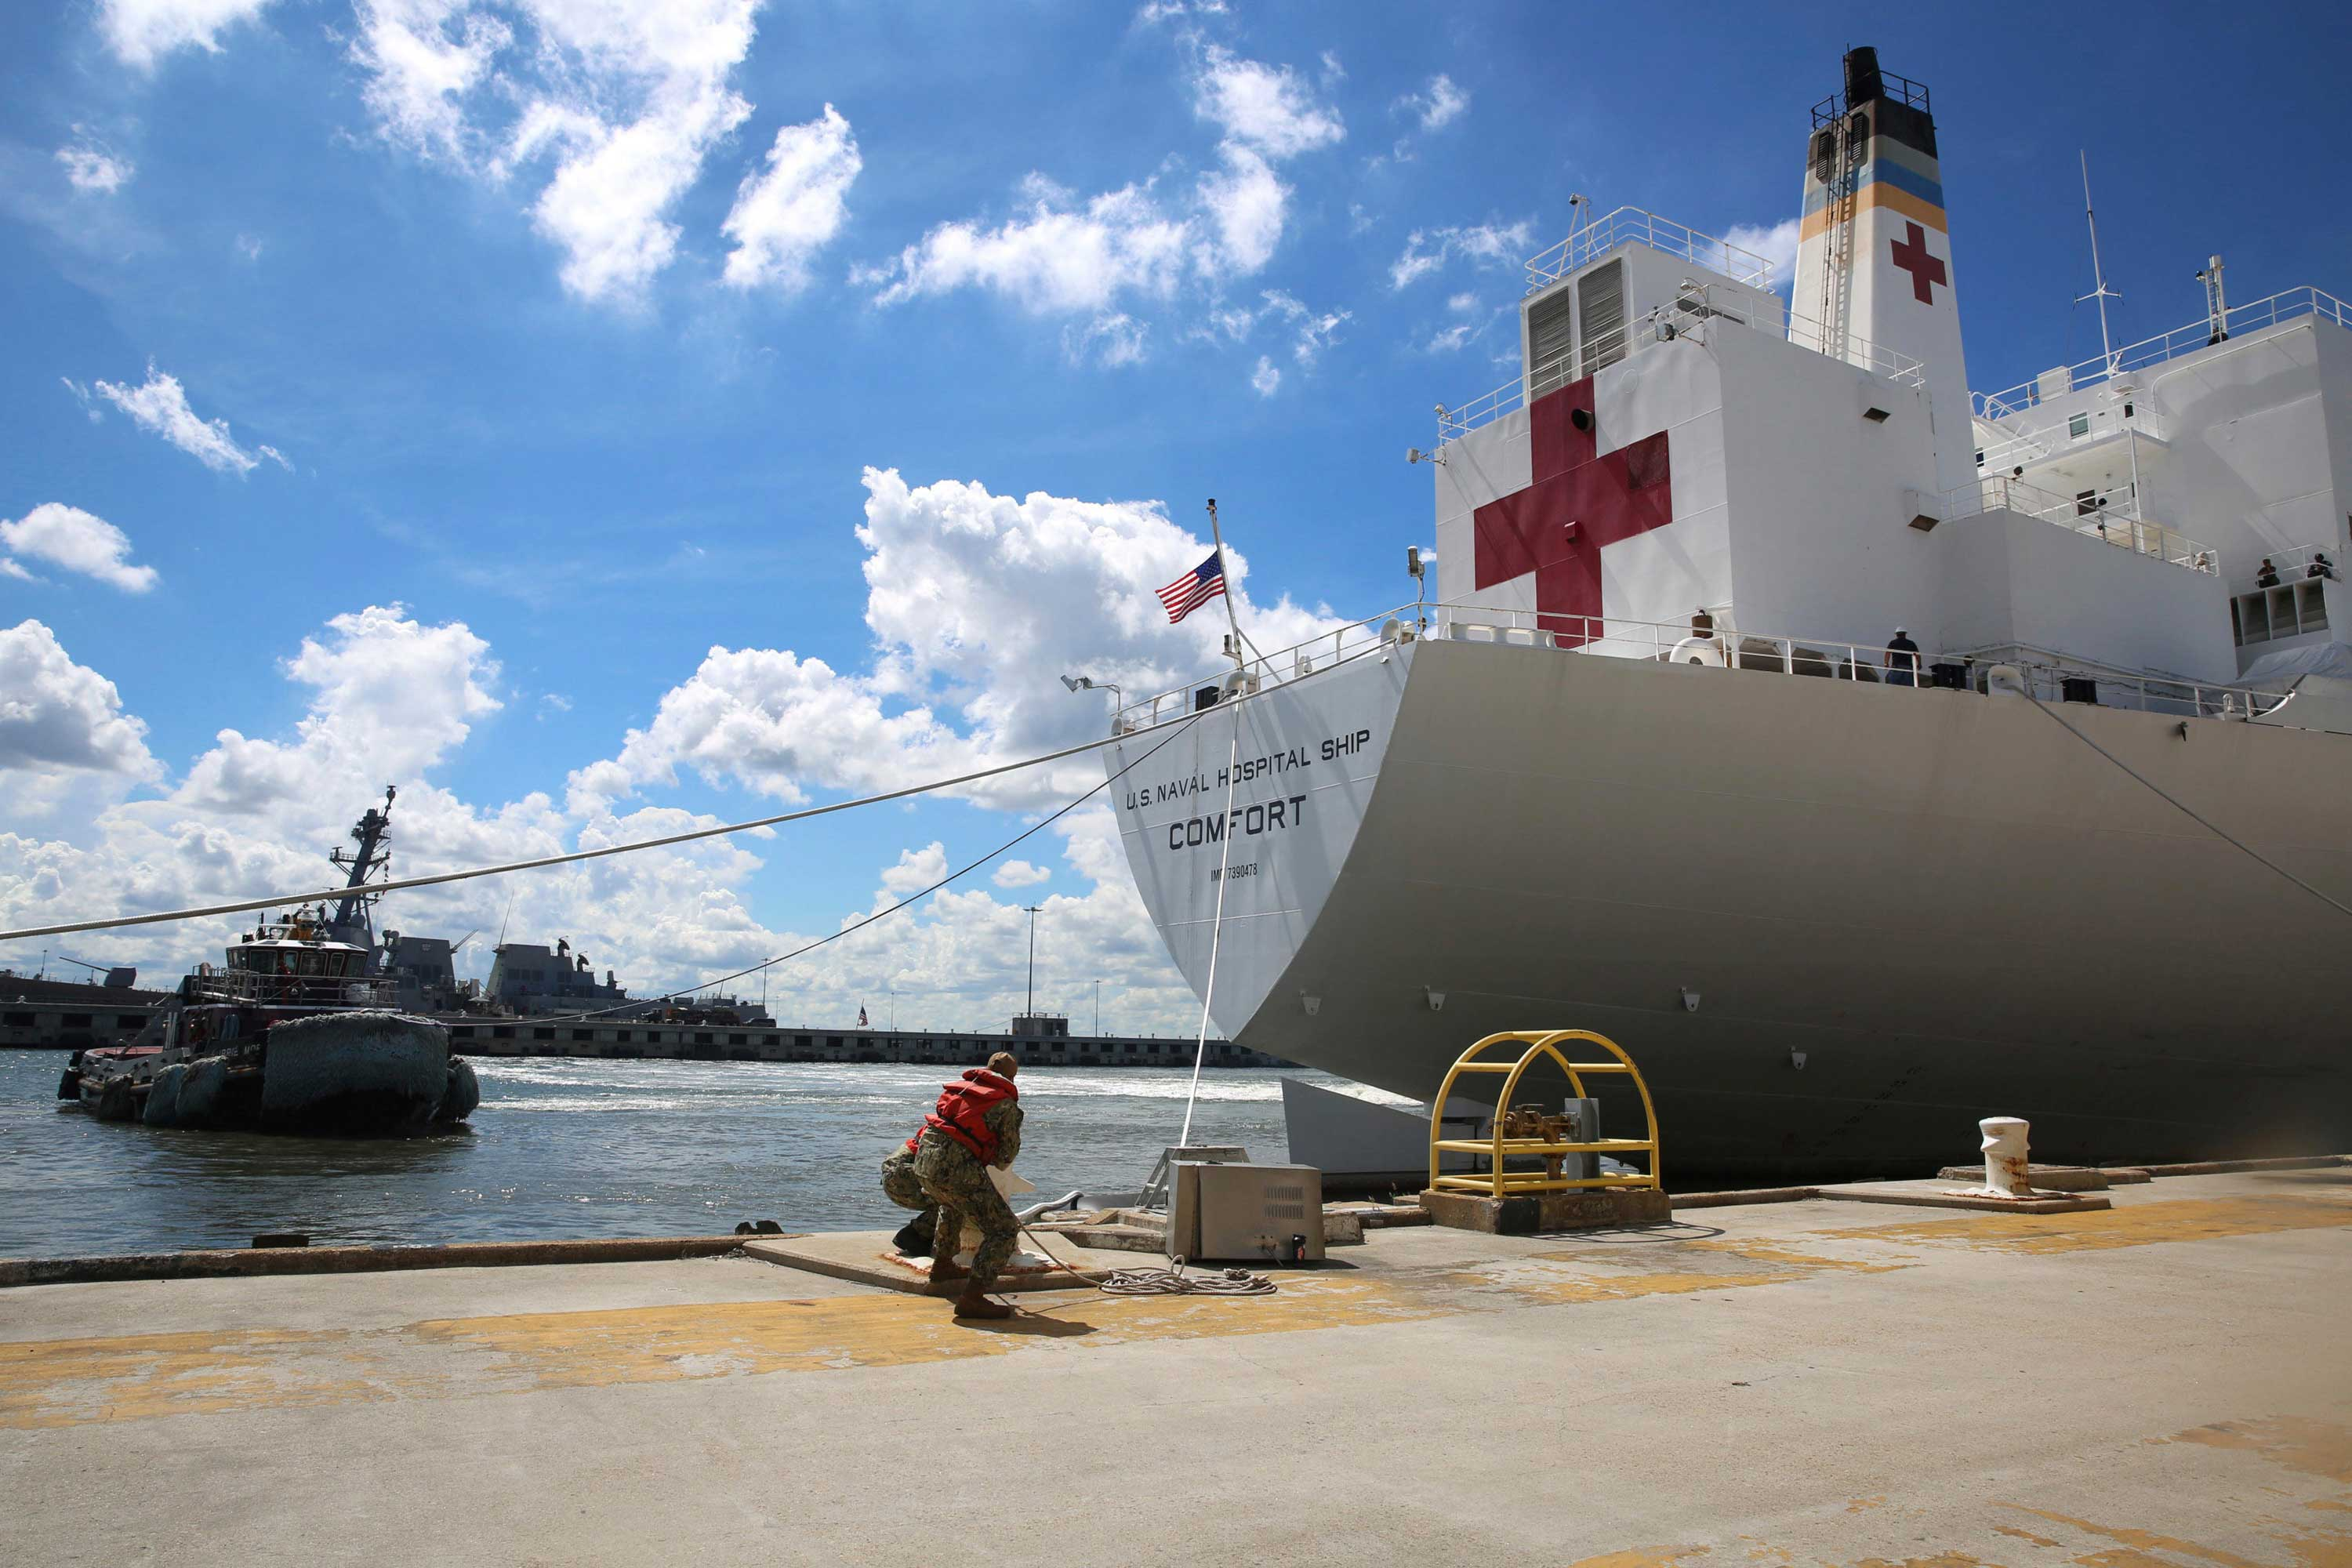 "<div class=""meta image-caption""><div class=""origin-logo origin-image none""><span>none</span></div><span class=""caption-text"">Sailors cast off mooring lines to the Military Sealift Command hospital ship USNS Comfort (T-AH 20) Tuesday, Sept. 11, 2018. (Jennifer Hunt/U.S. Navy via AP)</span></div>"